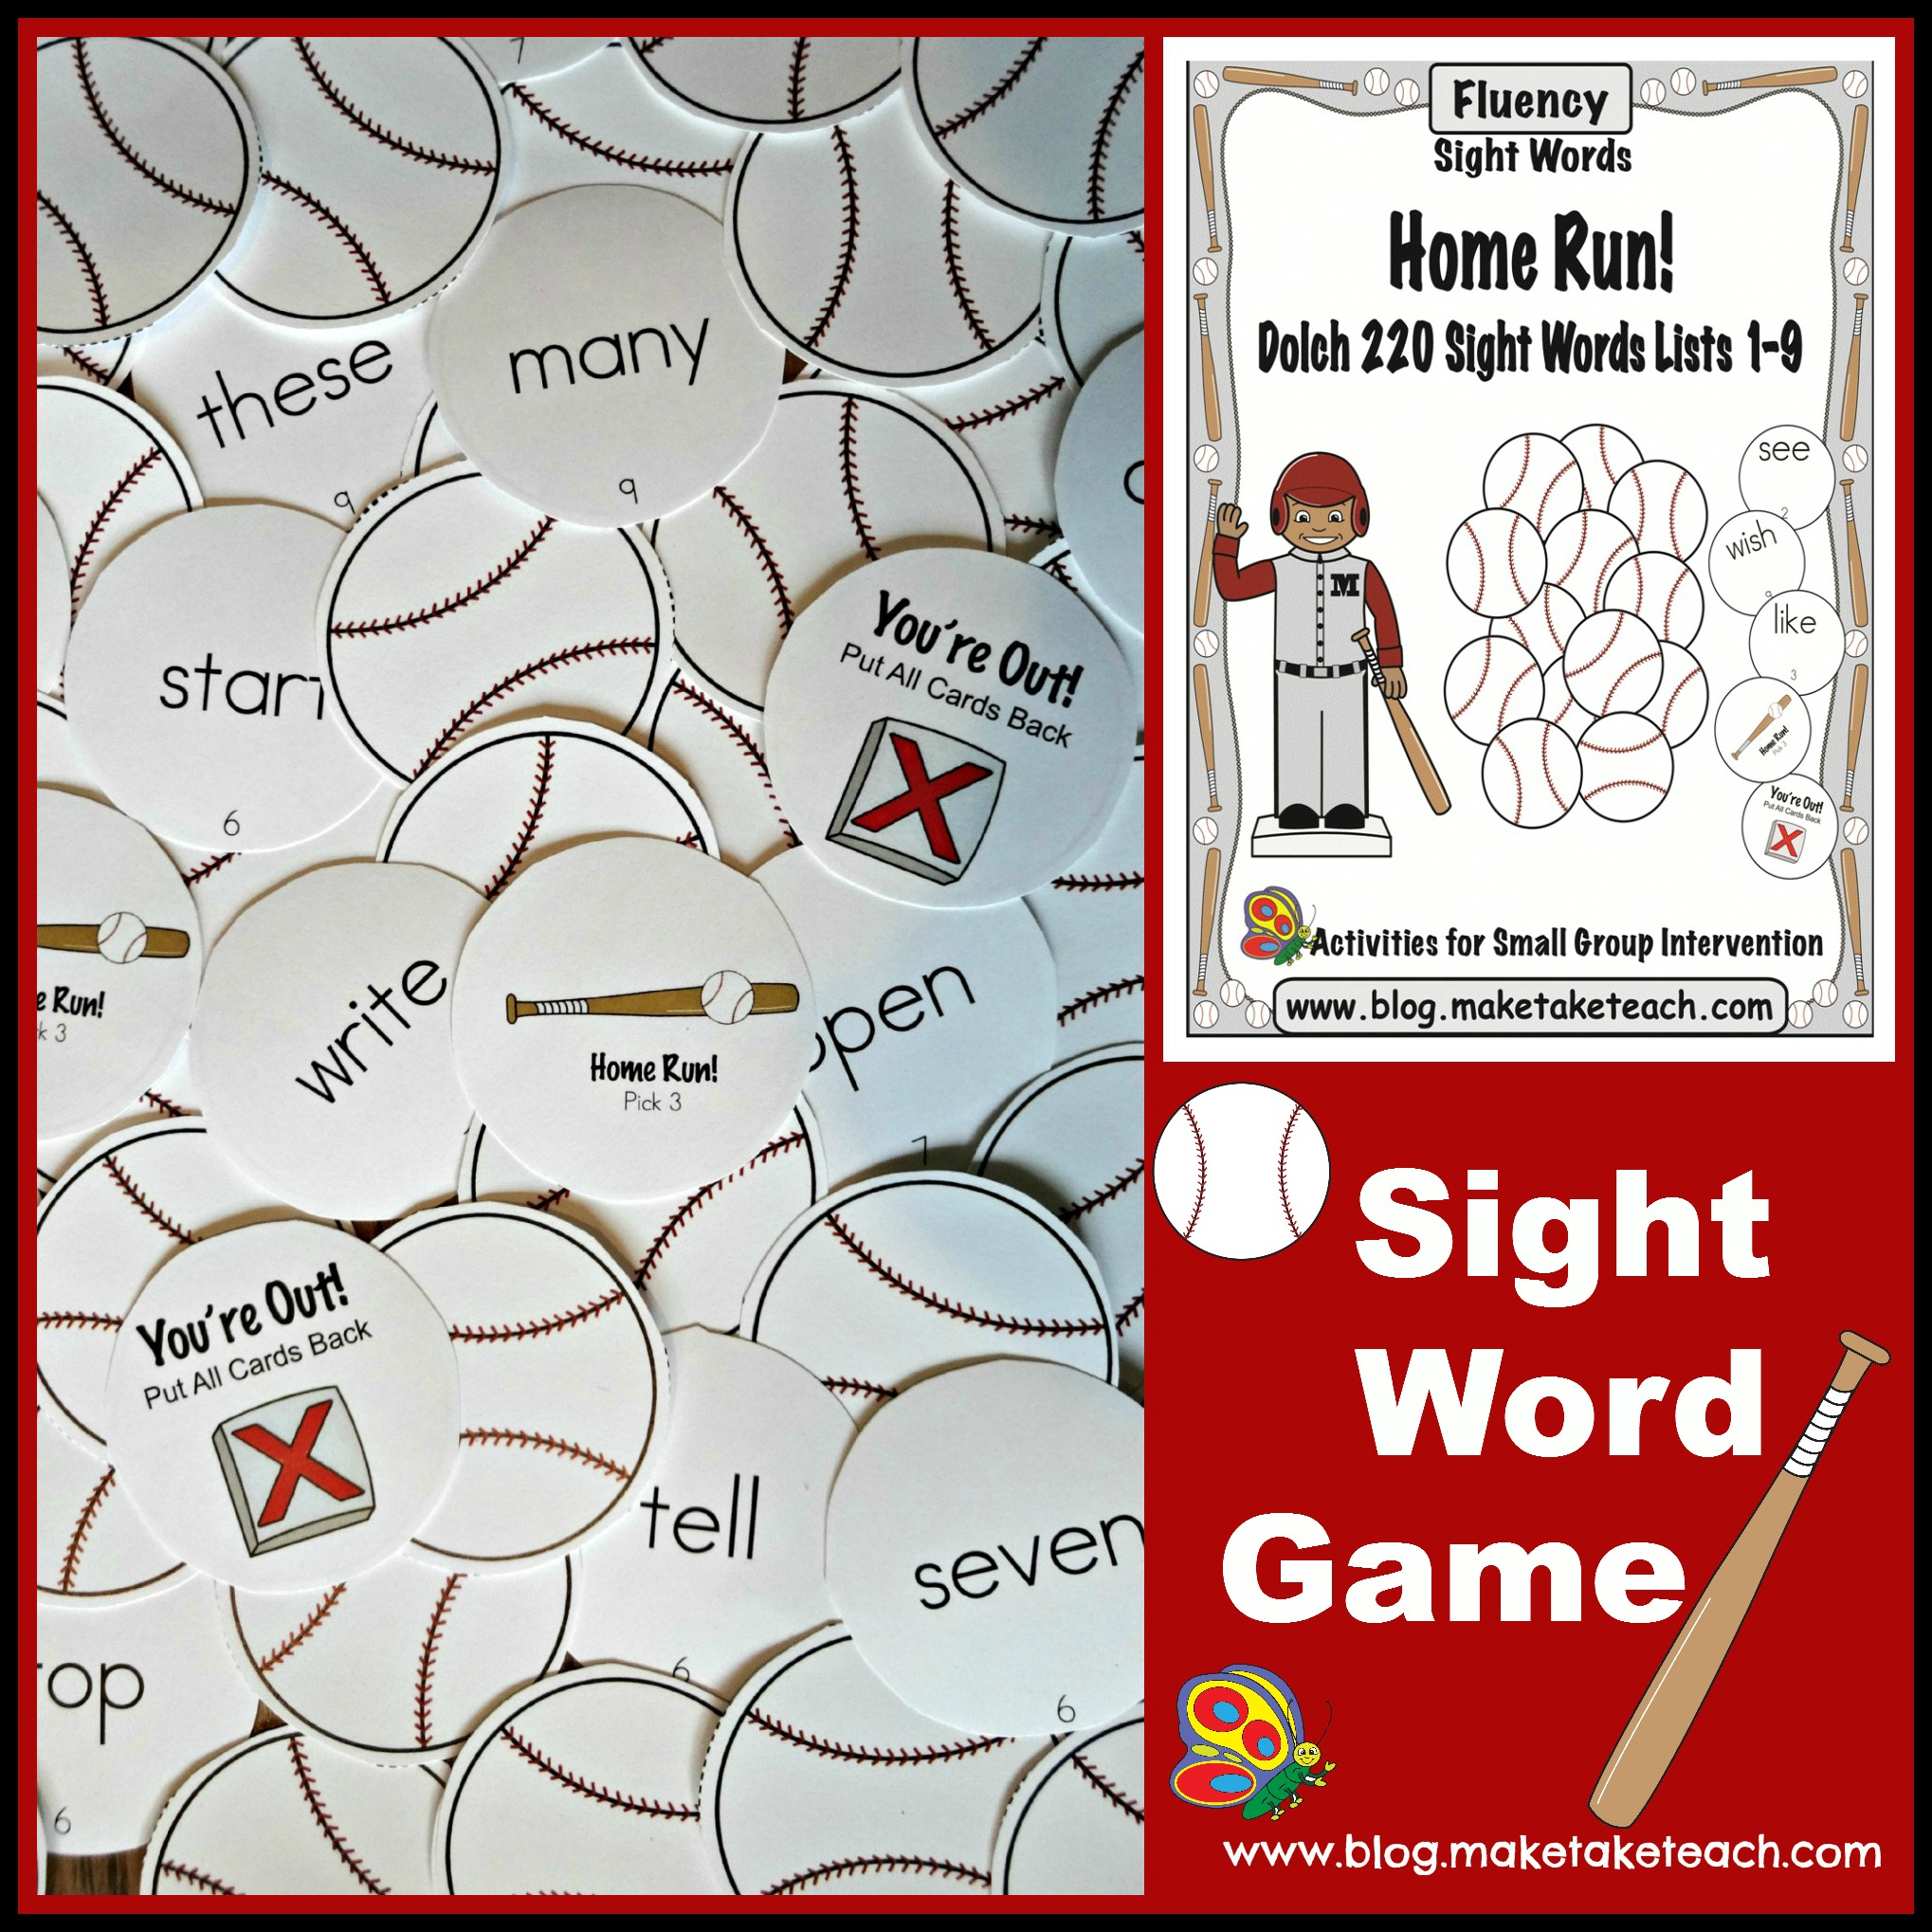 photo about Sight Word Games Printable referred to as Sight Phrase Game titles for our Very little Baseball Followers - Generate Get